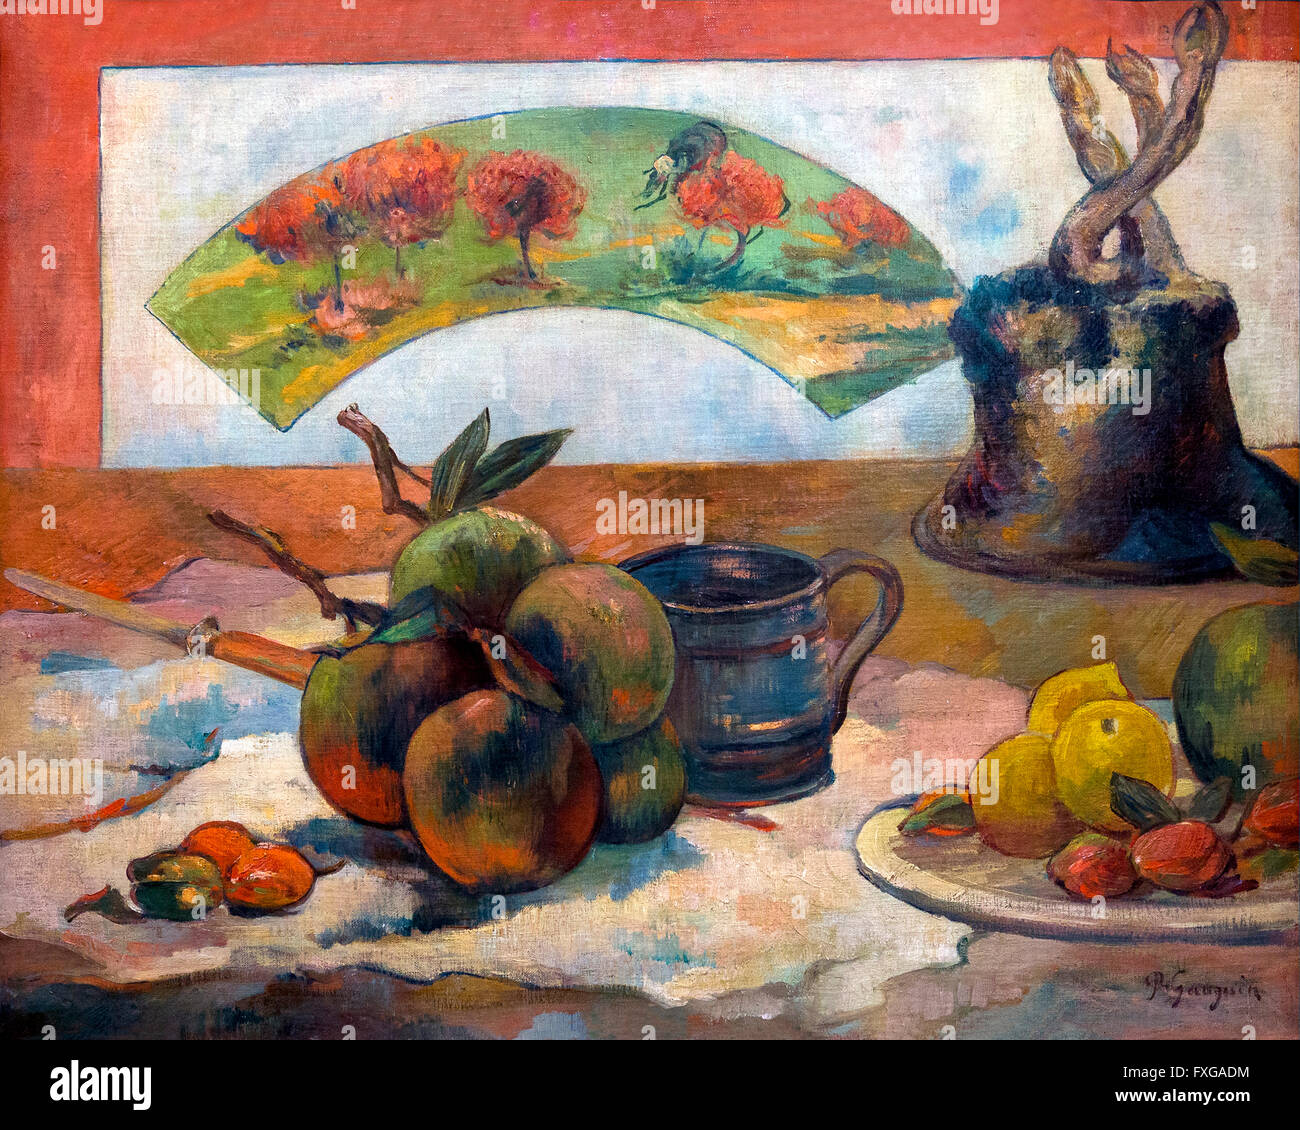 Still-life with fan, Nature Morte a l'eventail, by Paul Gauguin, 1889,Musee D'Orsay, Paris, France, Europe - Stock Image